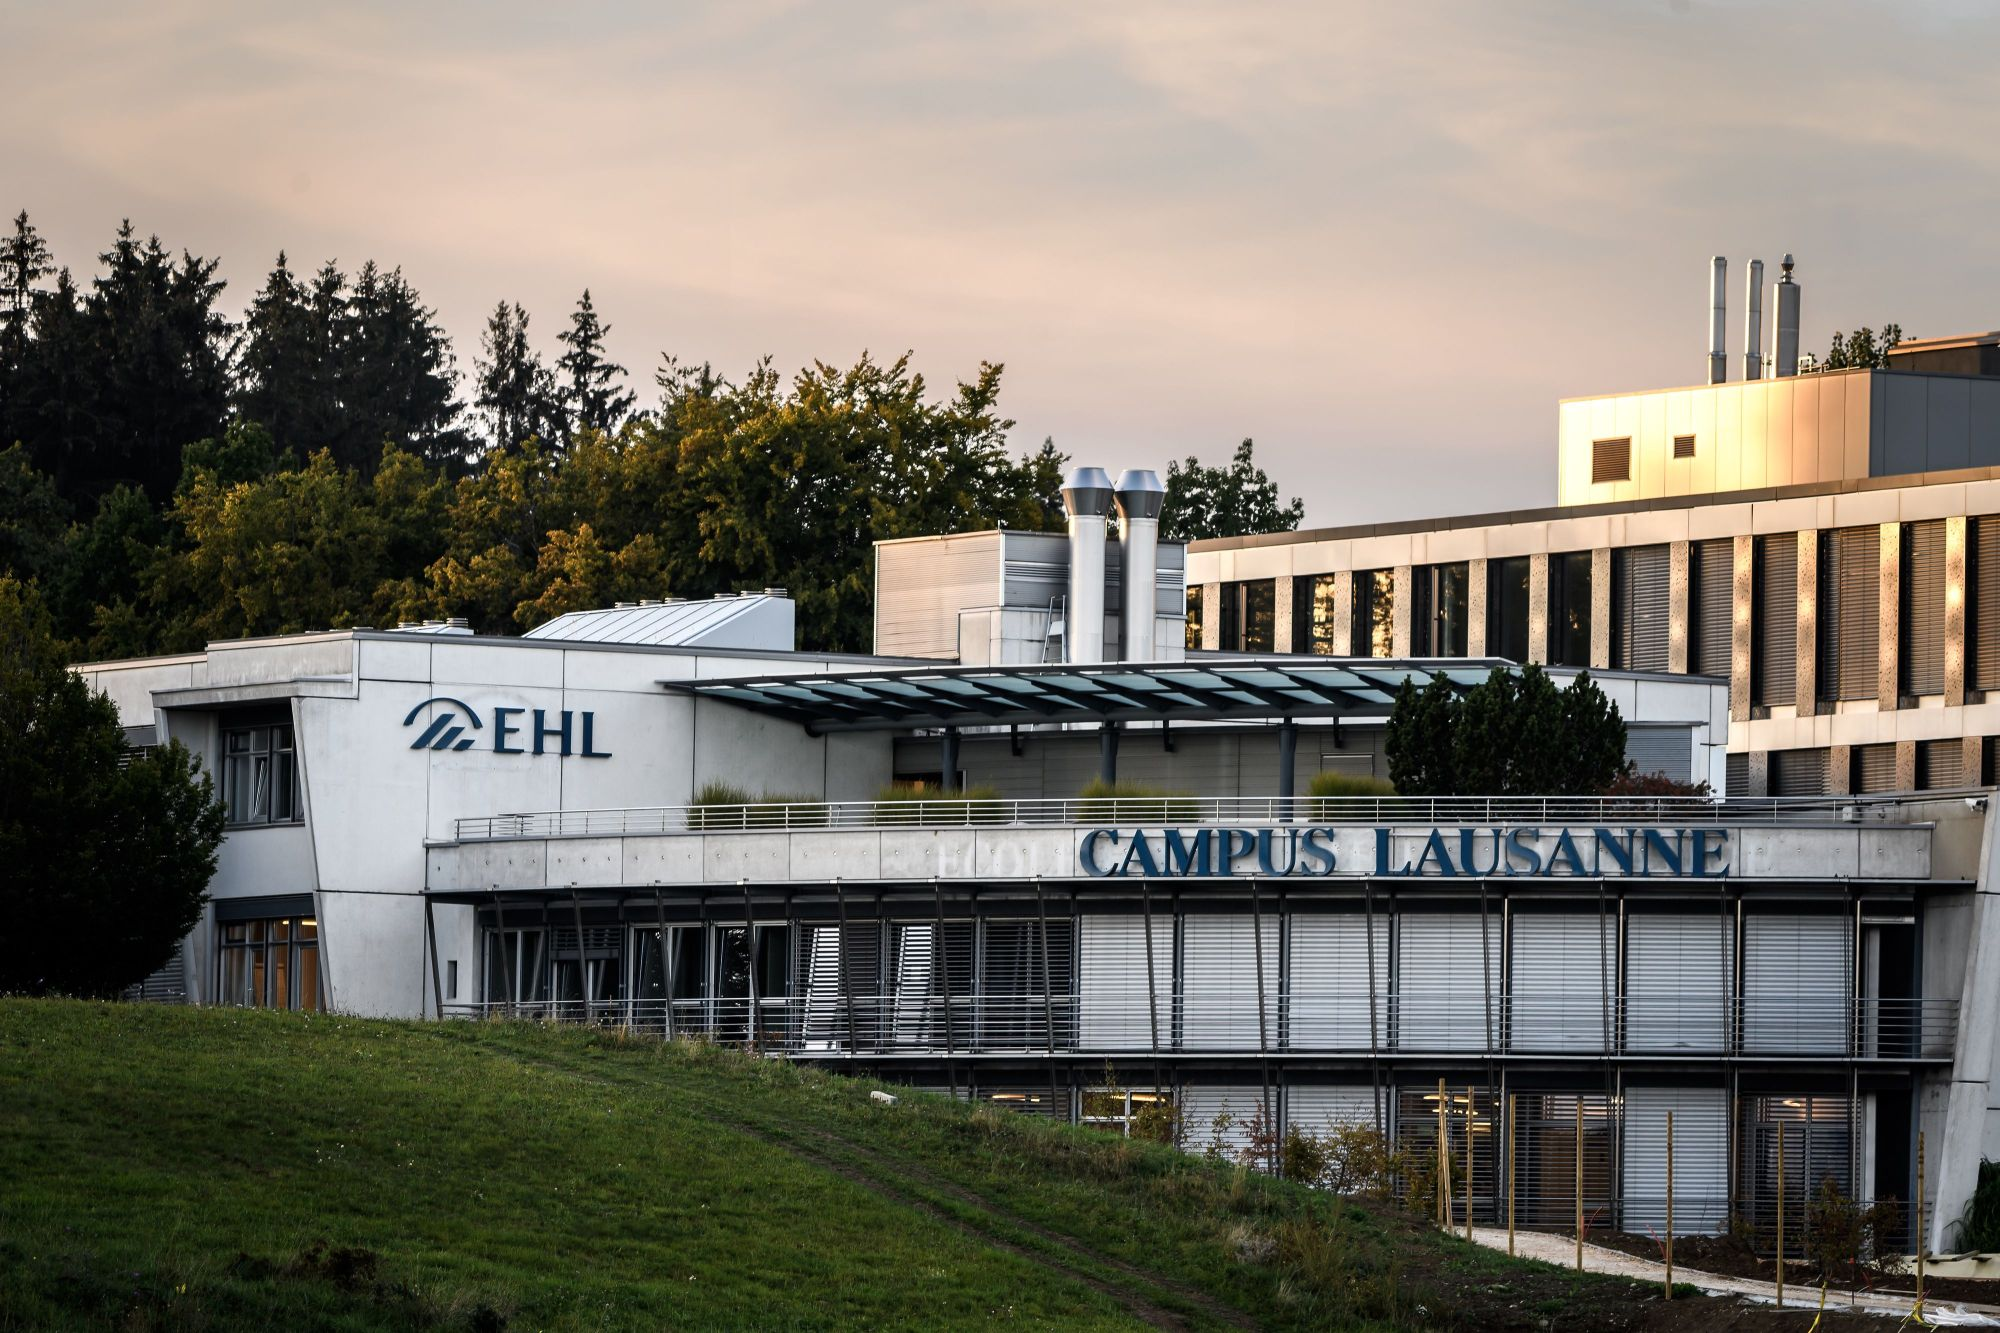 A picture taken on September 23, 2020 above Lausanne shows the EHL Hospitality Management School of Lausanne in which some 2500 students have been placed in quarantine after several outbreaks of coronavirus were reported there following private parties. (FABRICE COFFRINI/AFP via Getty Images)